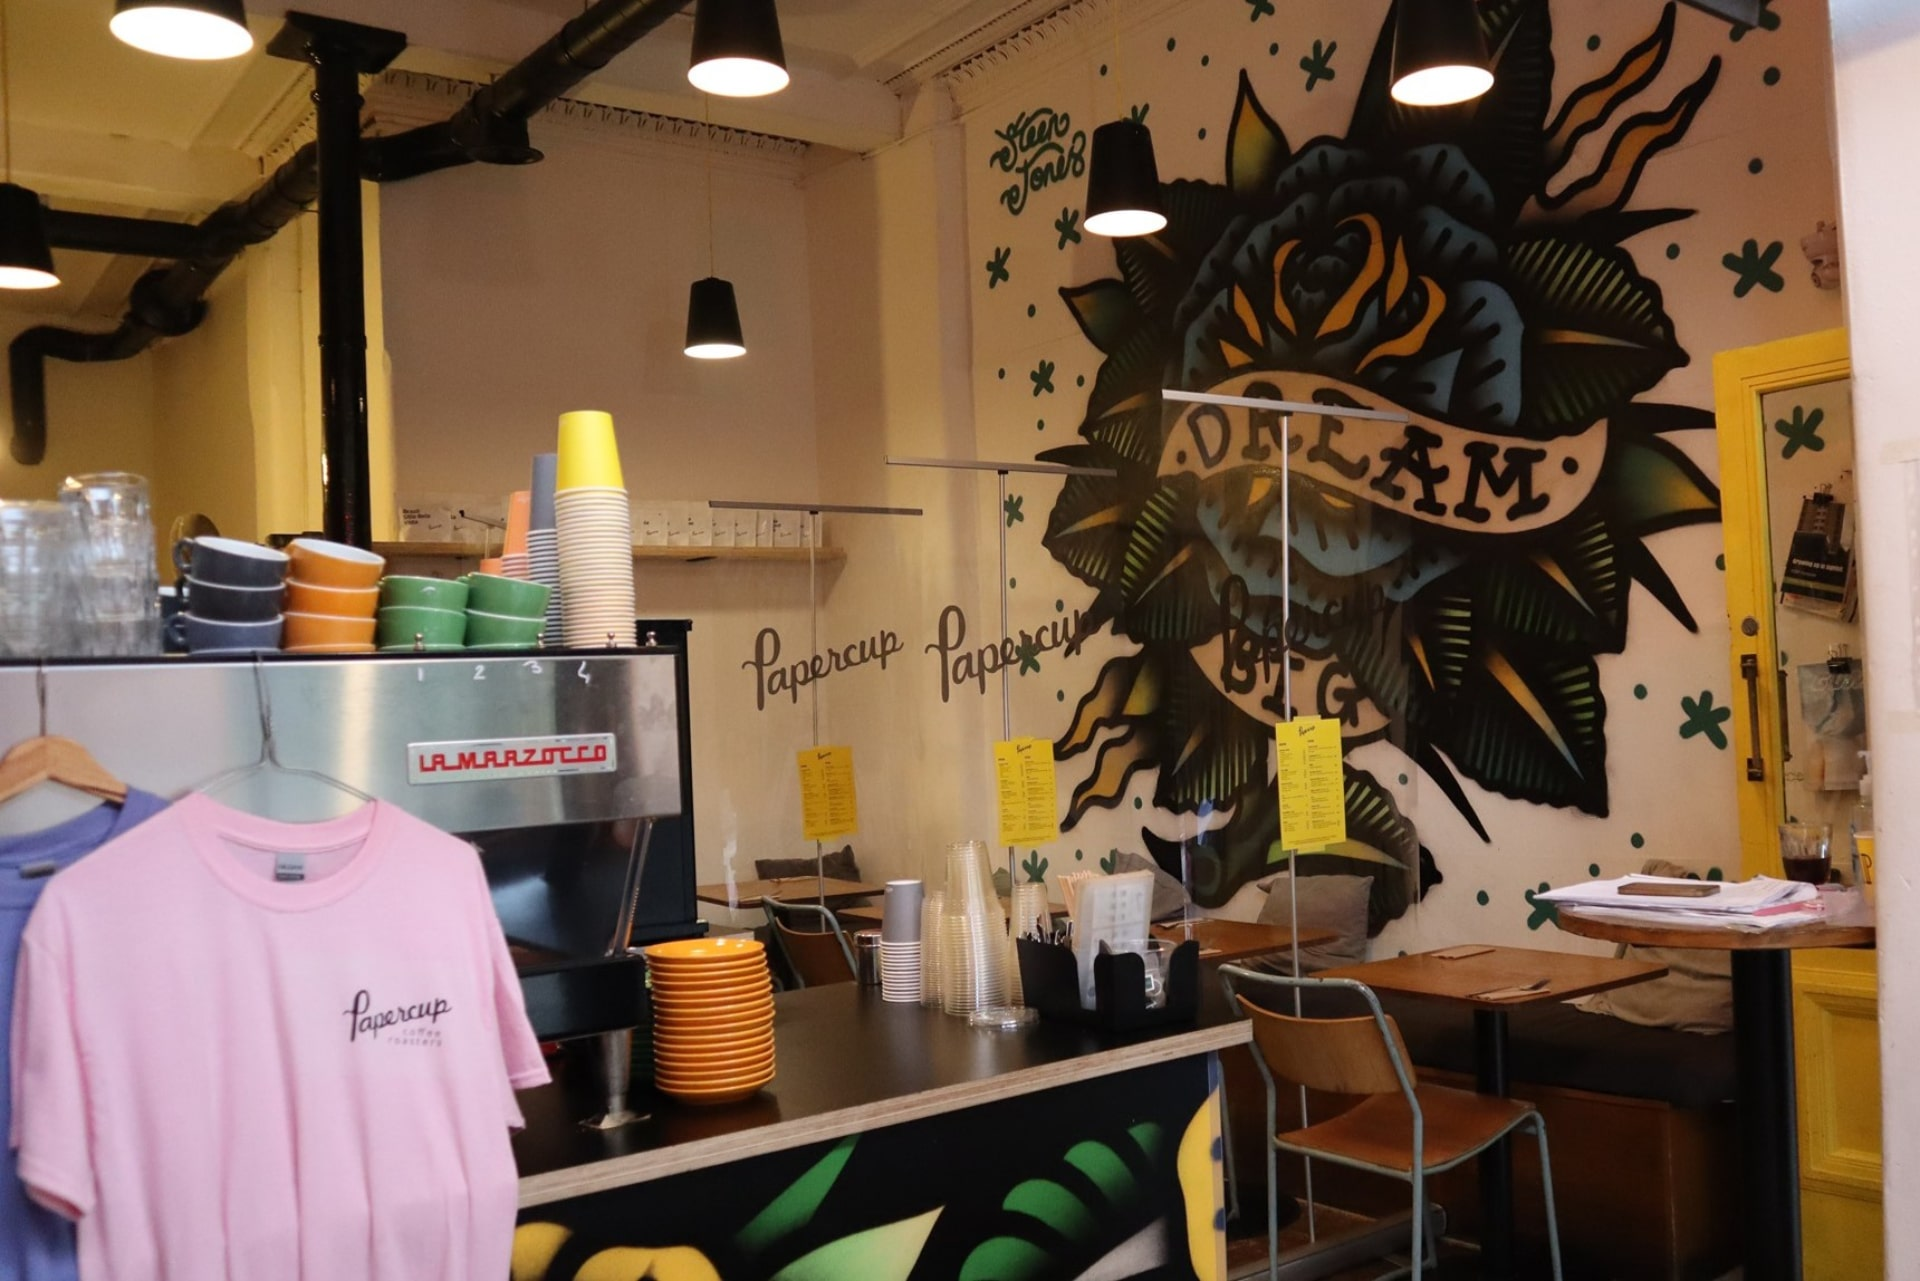 cool-edgy-interior-of-coffee-shop-with-grafitti-on-walls-papercup-glasgow